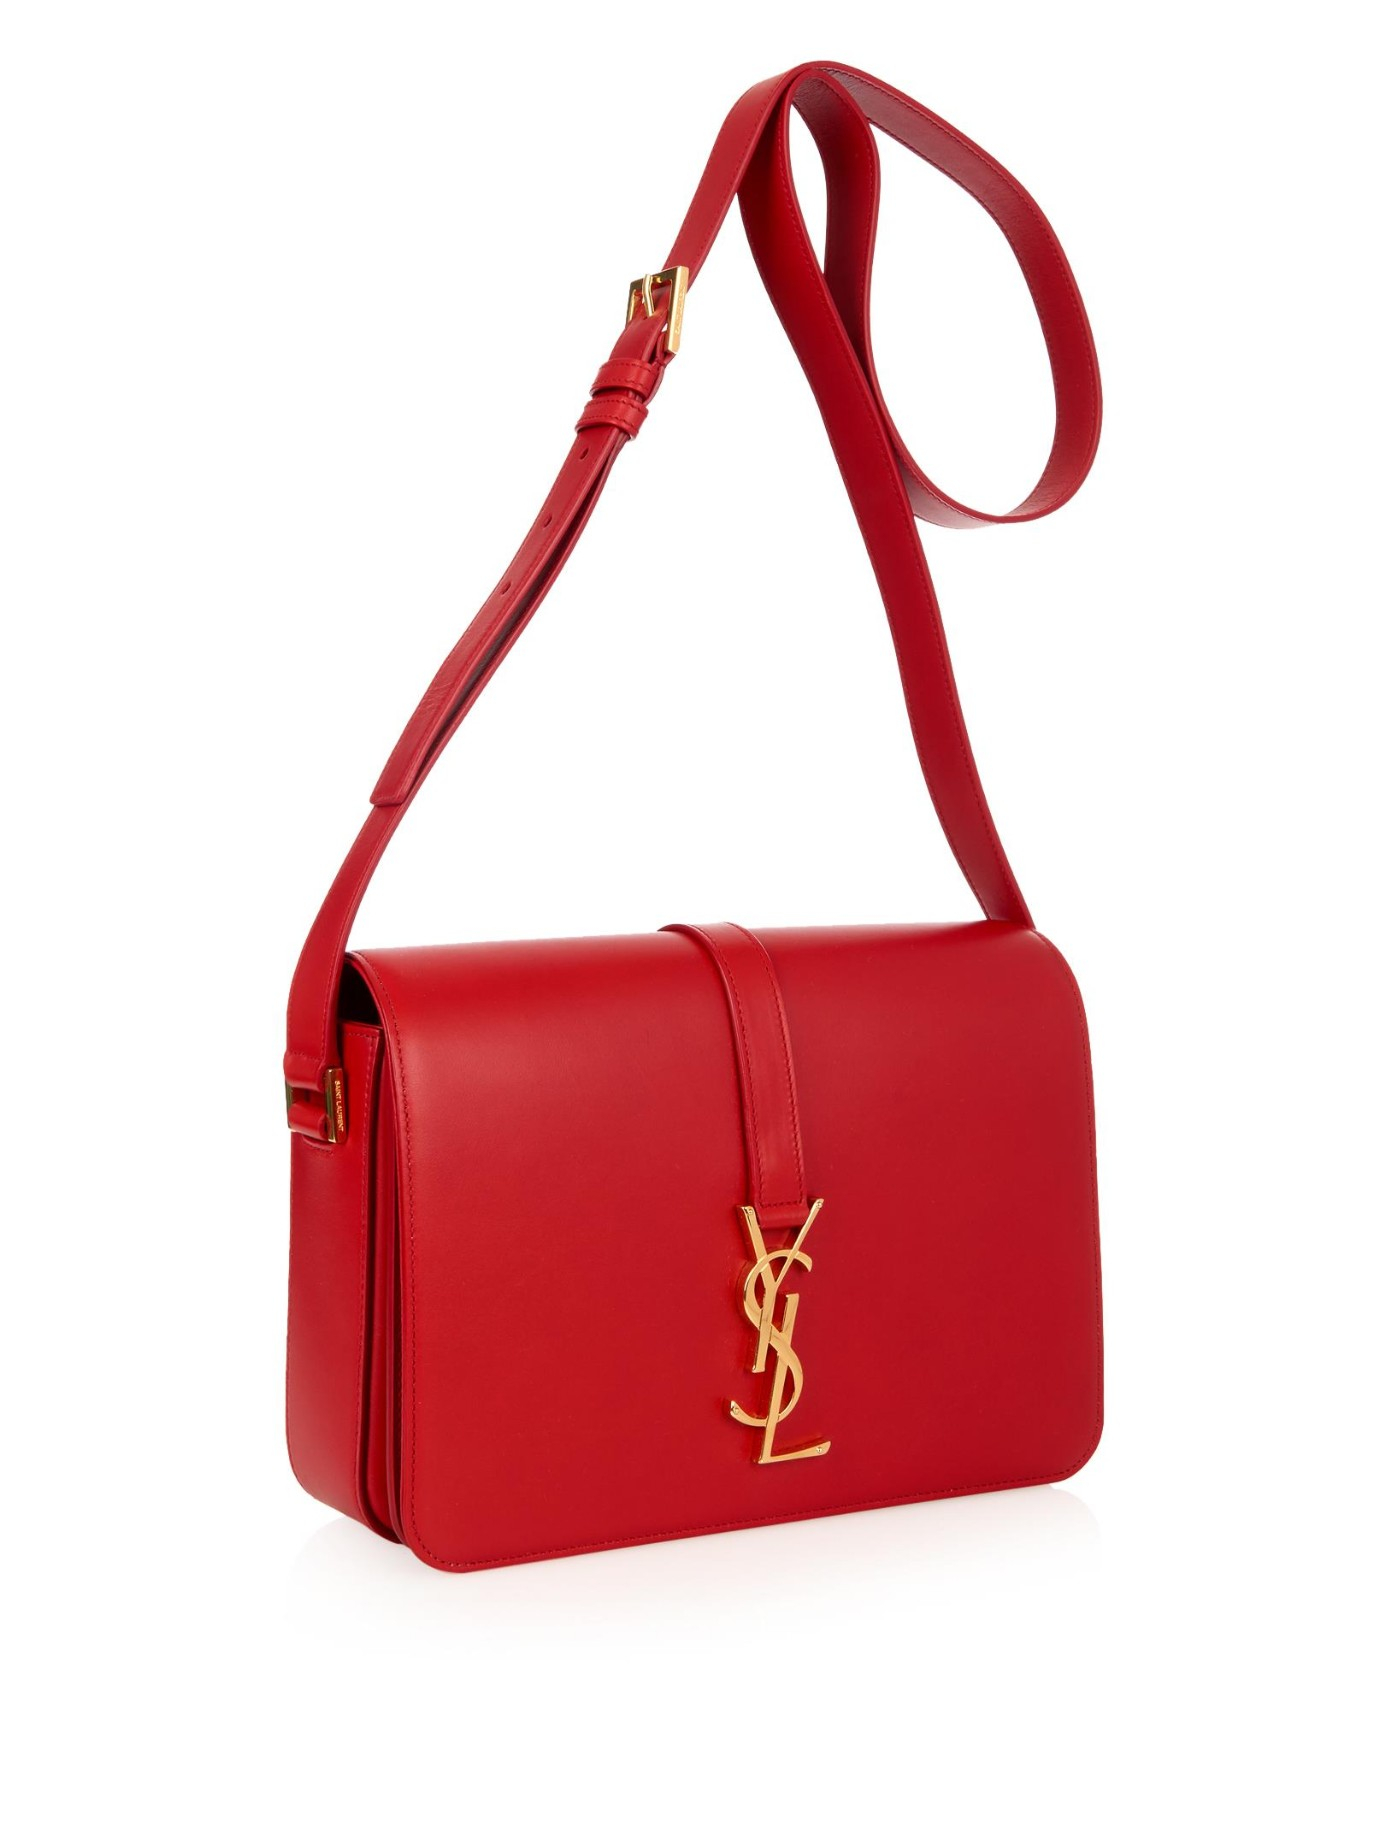 lyst saint laurent universit medium leather cross body bag in red. Black Bedroom Furniture Sets. Home Design Ideas